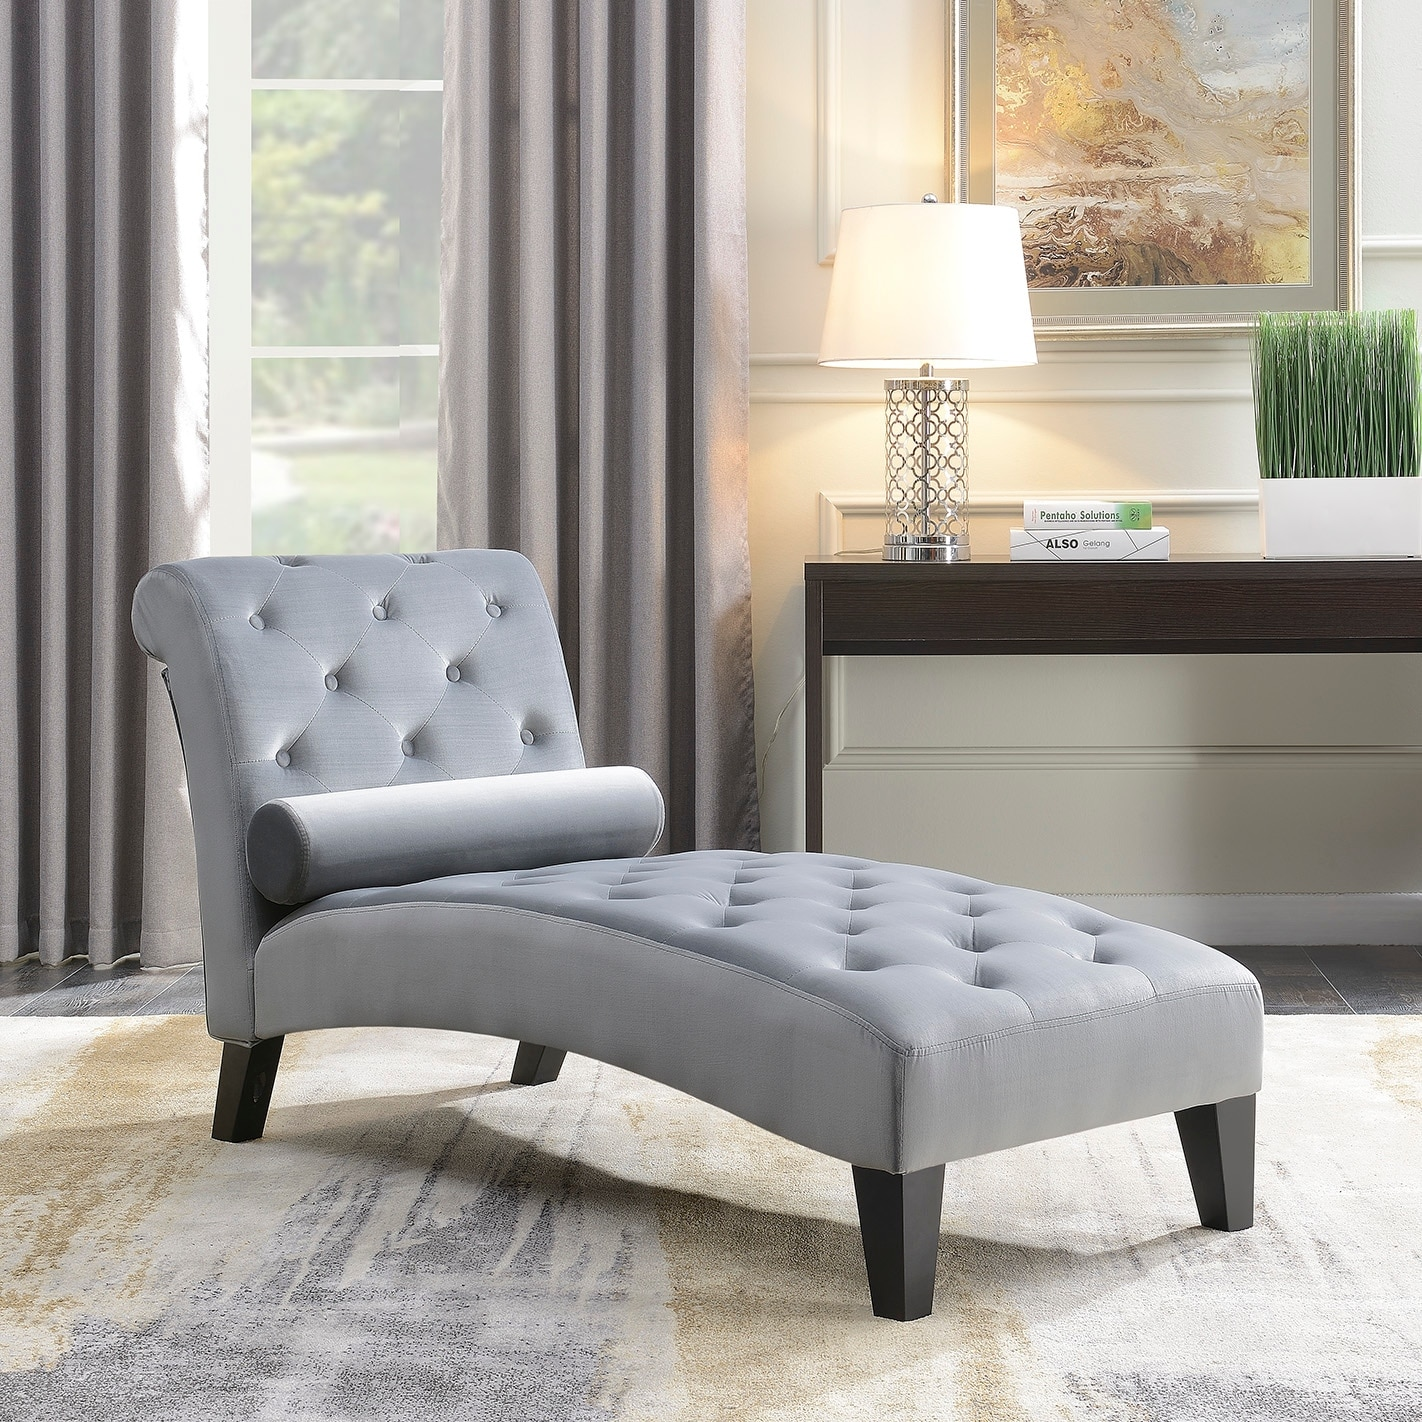 Belleze Living Room Home Office Button Tufted Leisure Chair Rest Sofa  Chaise Lounge Couch Indoor Furniture, Gray